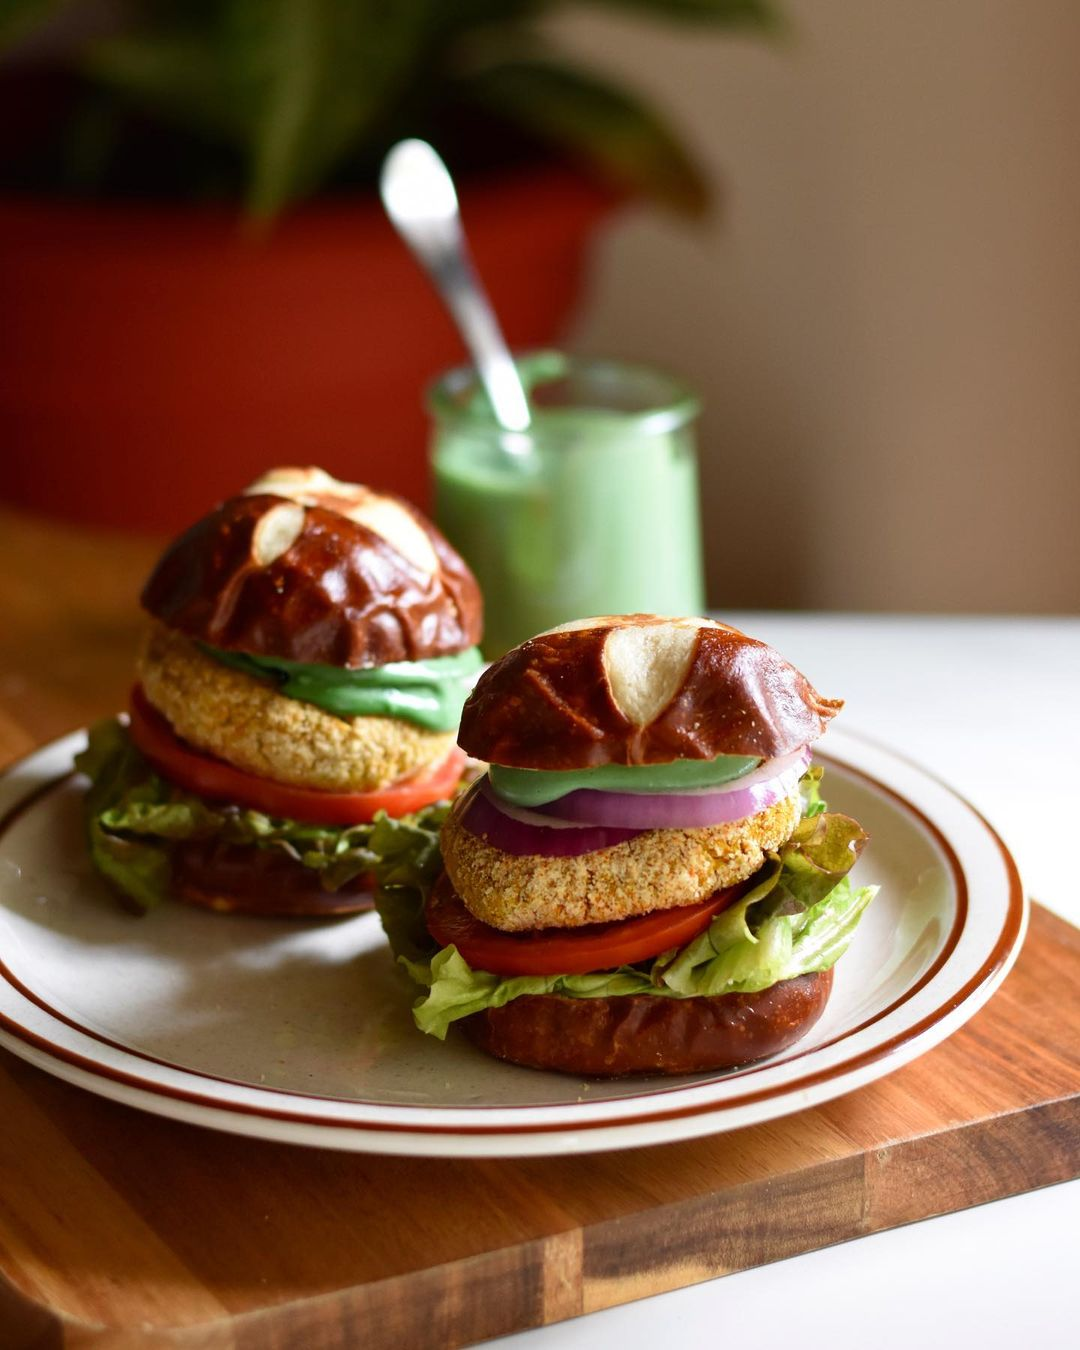 some chili almond crusted chickpea sliders for your sunday display image  c2dab5e0